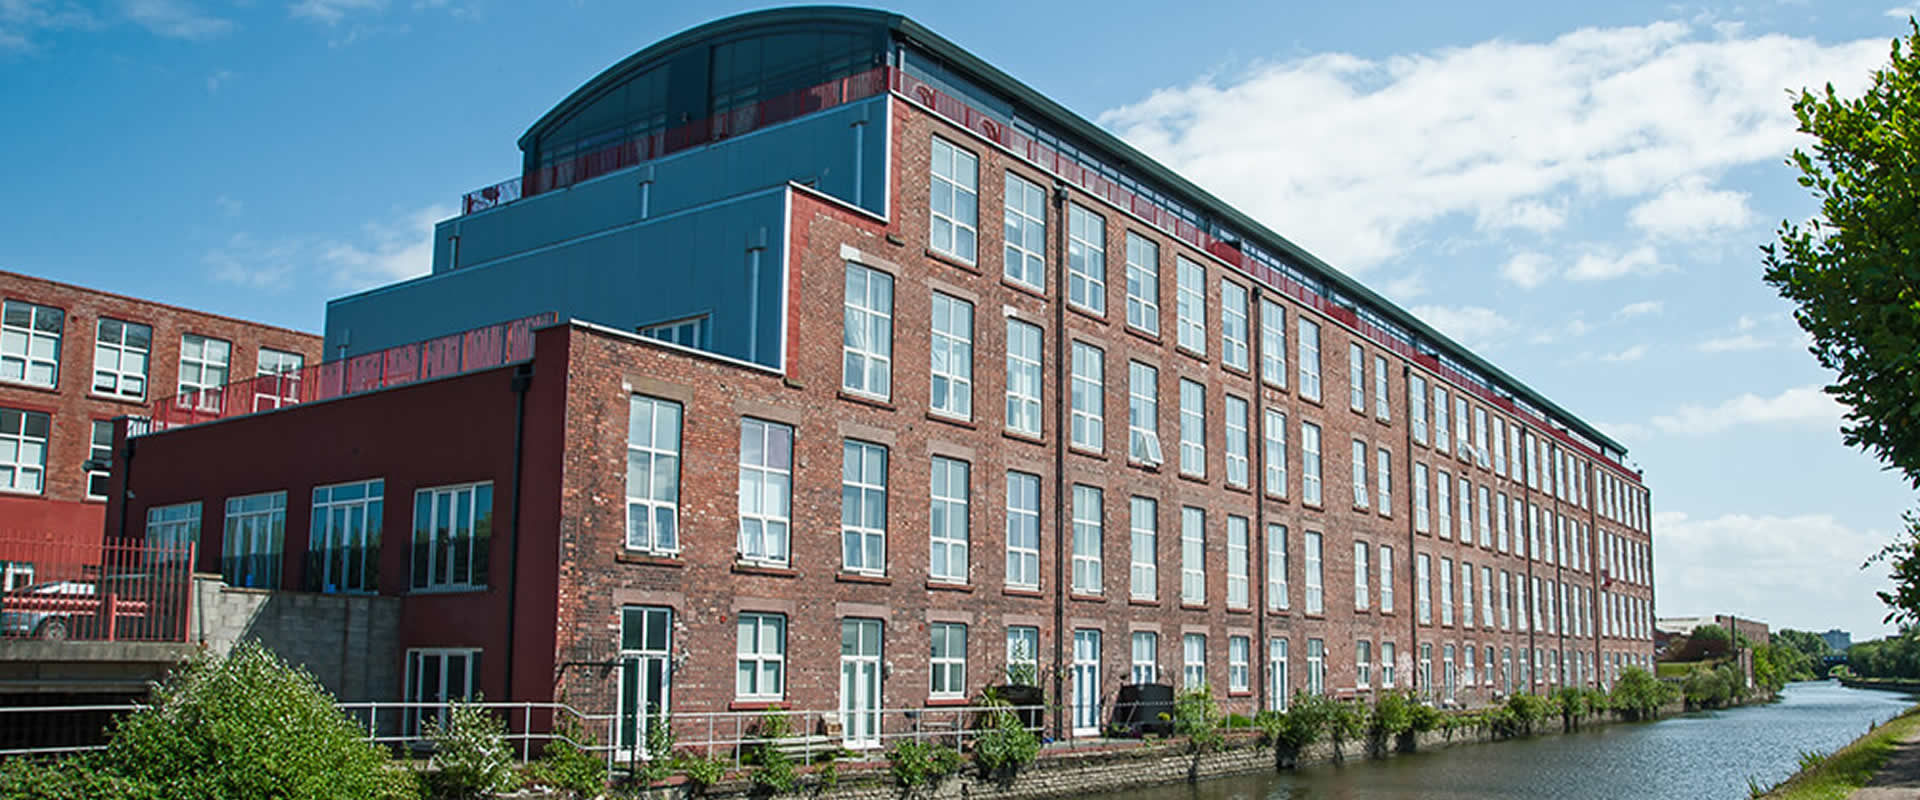 TOBACCO WHARF River City ResidenceLiverpool, England - Location: Liverpool, EnglandGuide price from: £84,9957% NET Rental Return for 1 YearType: Apartments, Buy to Let InvestmentTobacco Wharf is located in a characteristic, refurbished building, a limited number of beautifully designed and high-quality finished apartments present Liverpool tenants with a new level of residential accommodation.